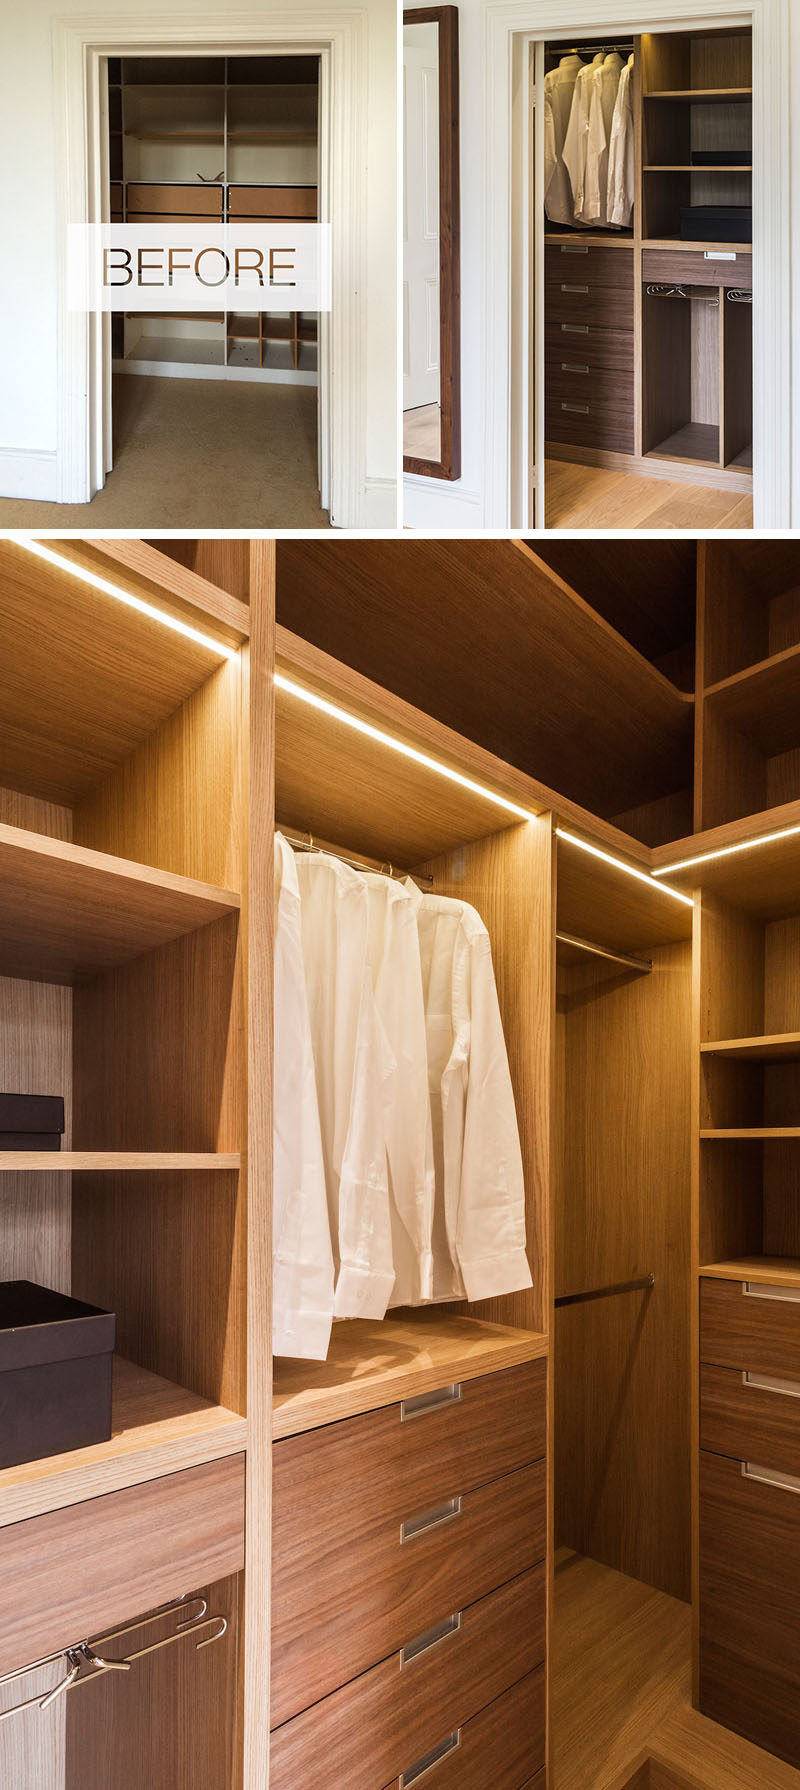 This updated dressingroom was re-designed with bespoke oak full height units to make the most of the space.#WalkInCloset #DressingRoom